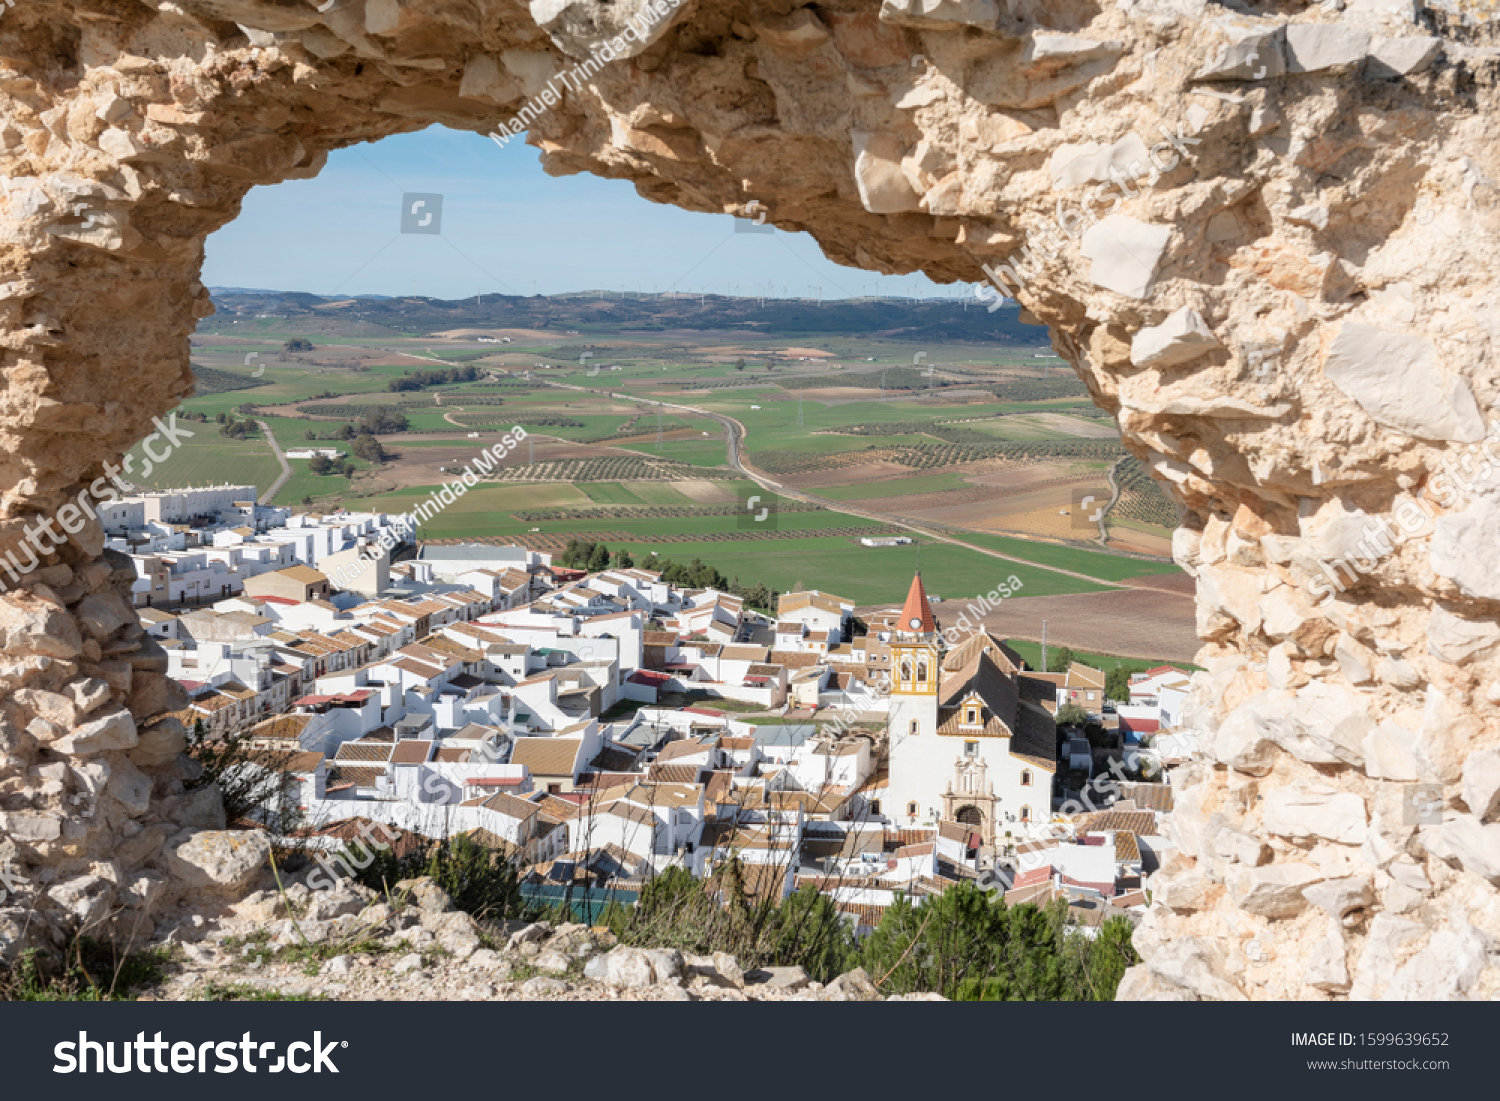 stock-photo-teba-is-a-town-located-in-th